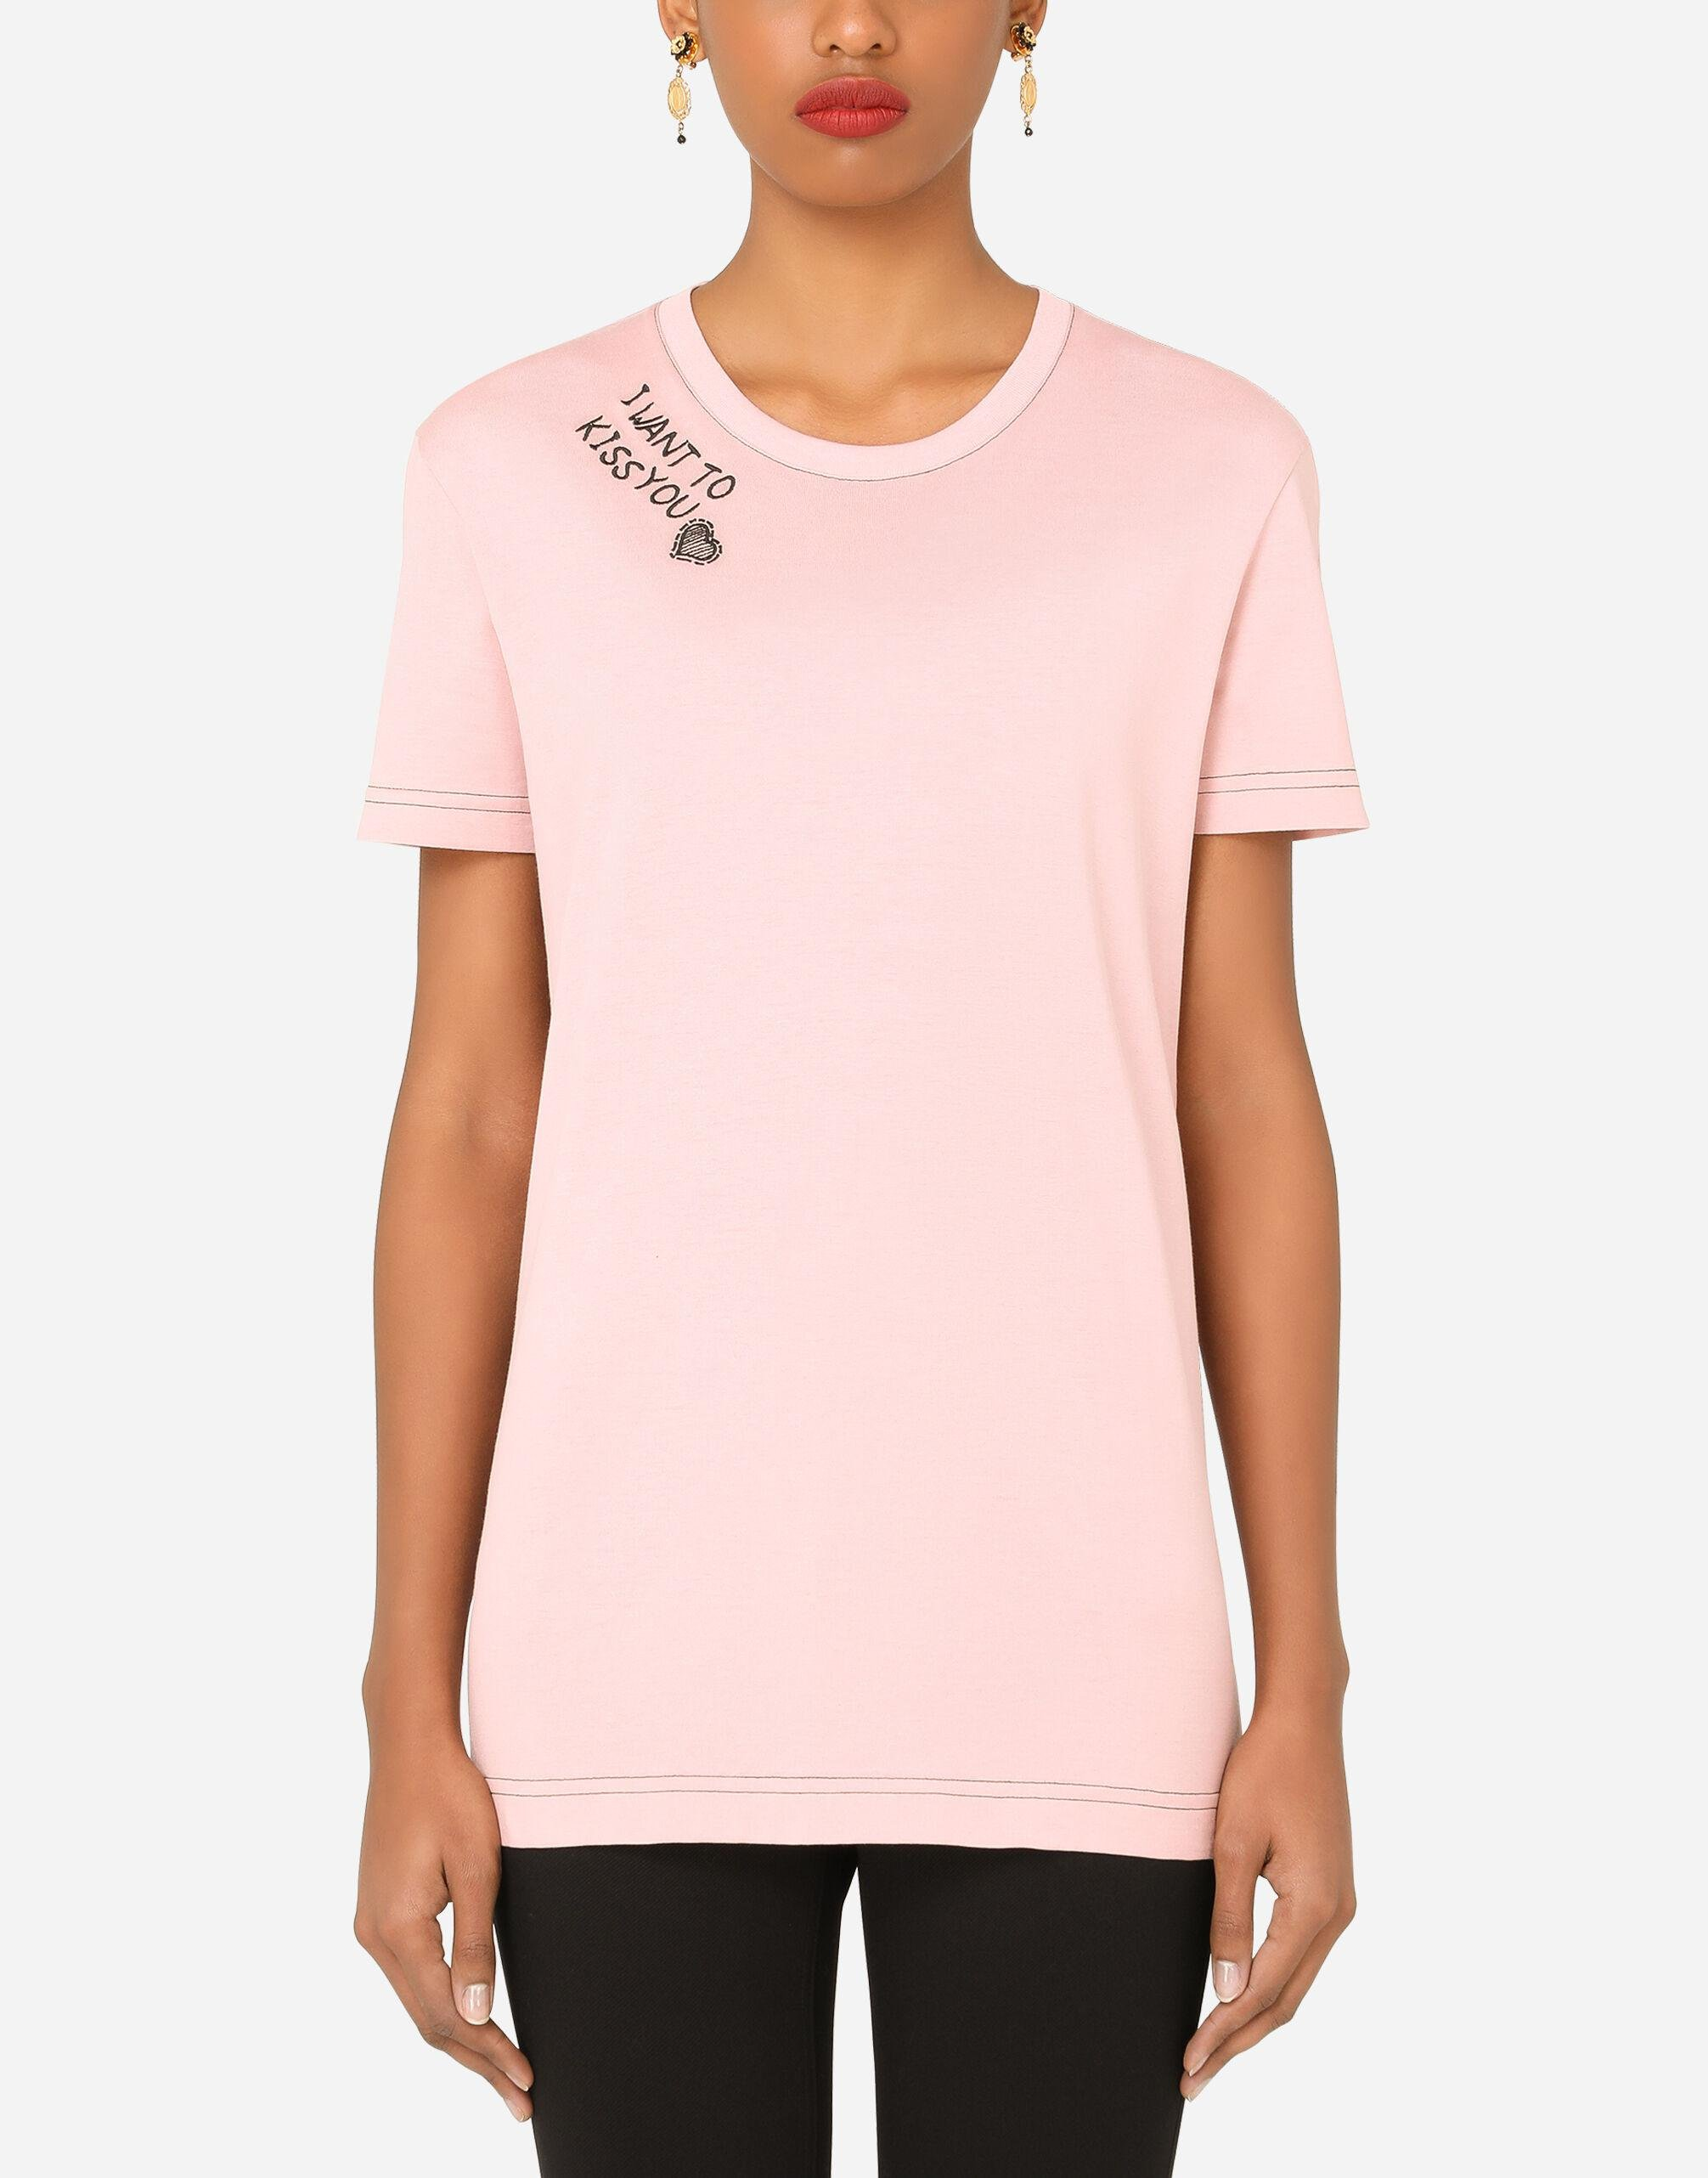 Jersey t-shirt with embroidery